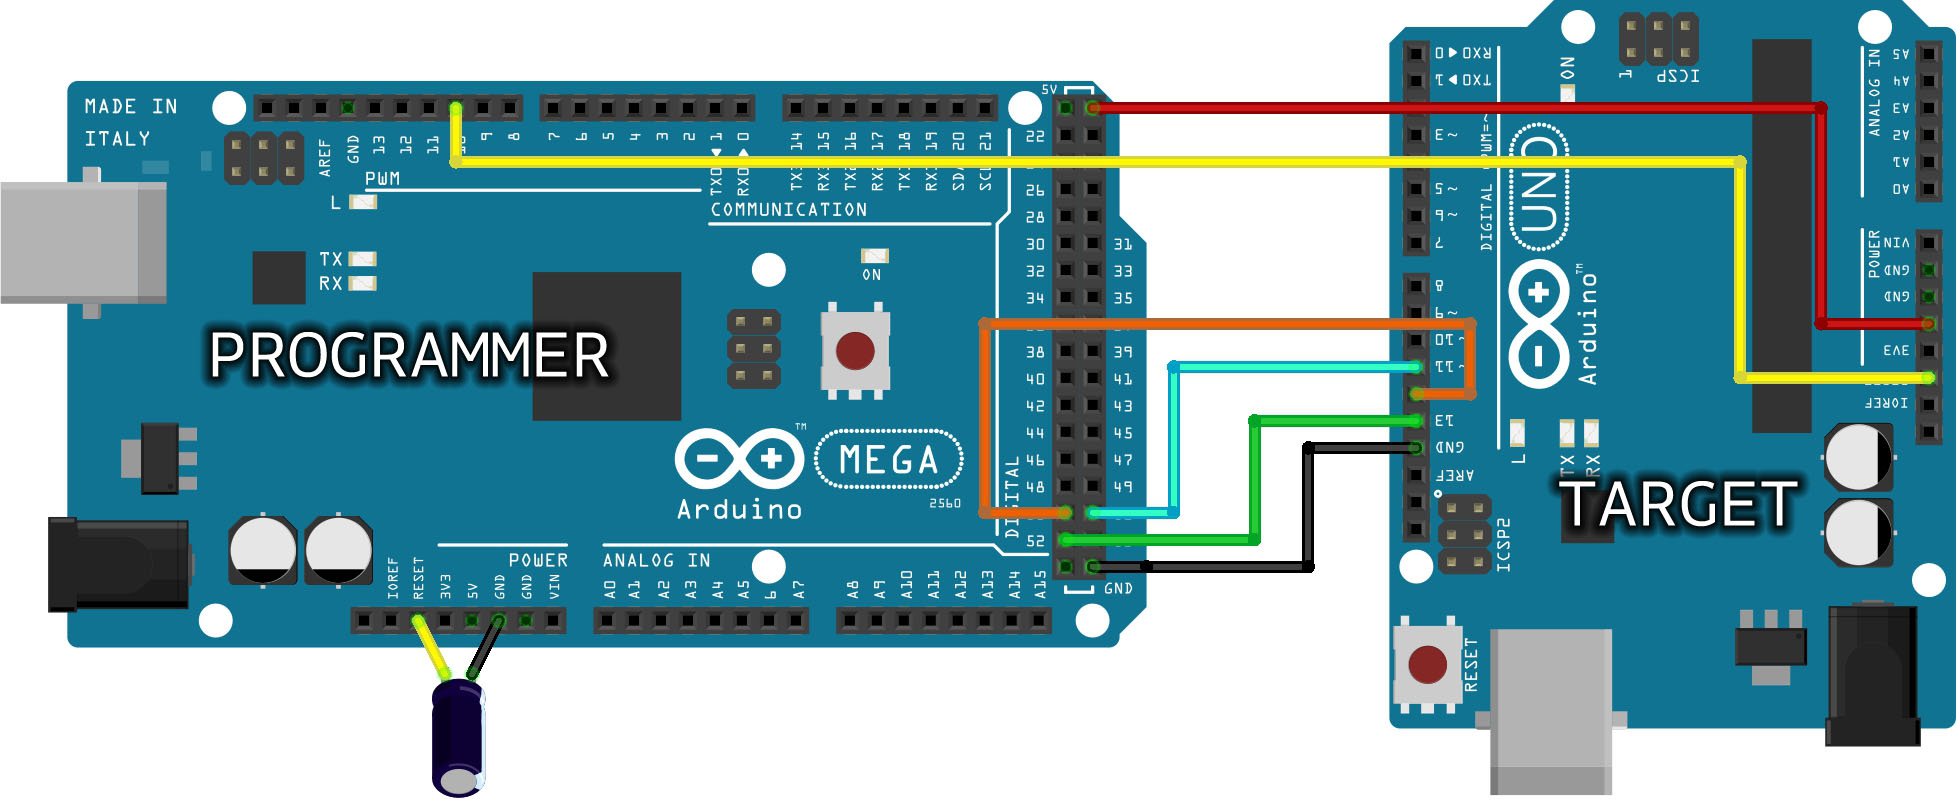 Arduino Arduinoisp Circuit Wiring Definition The Mega Above Is Programming An Uno Connecting D51 D11 D50 D12 D52 D13 Gnd 5v And D10 To Reset This Type Of Board Needs A 10f